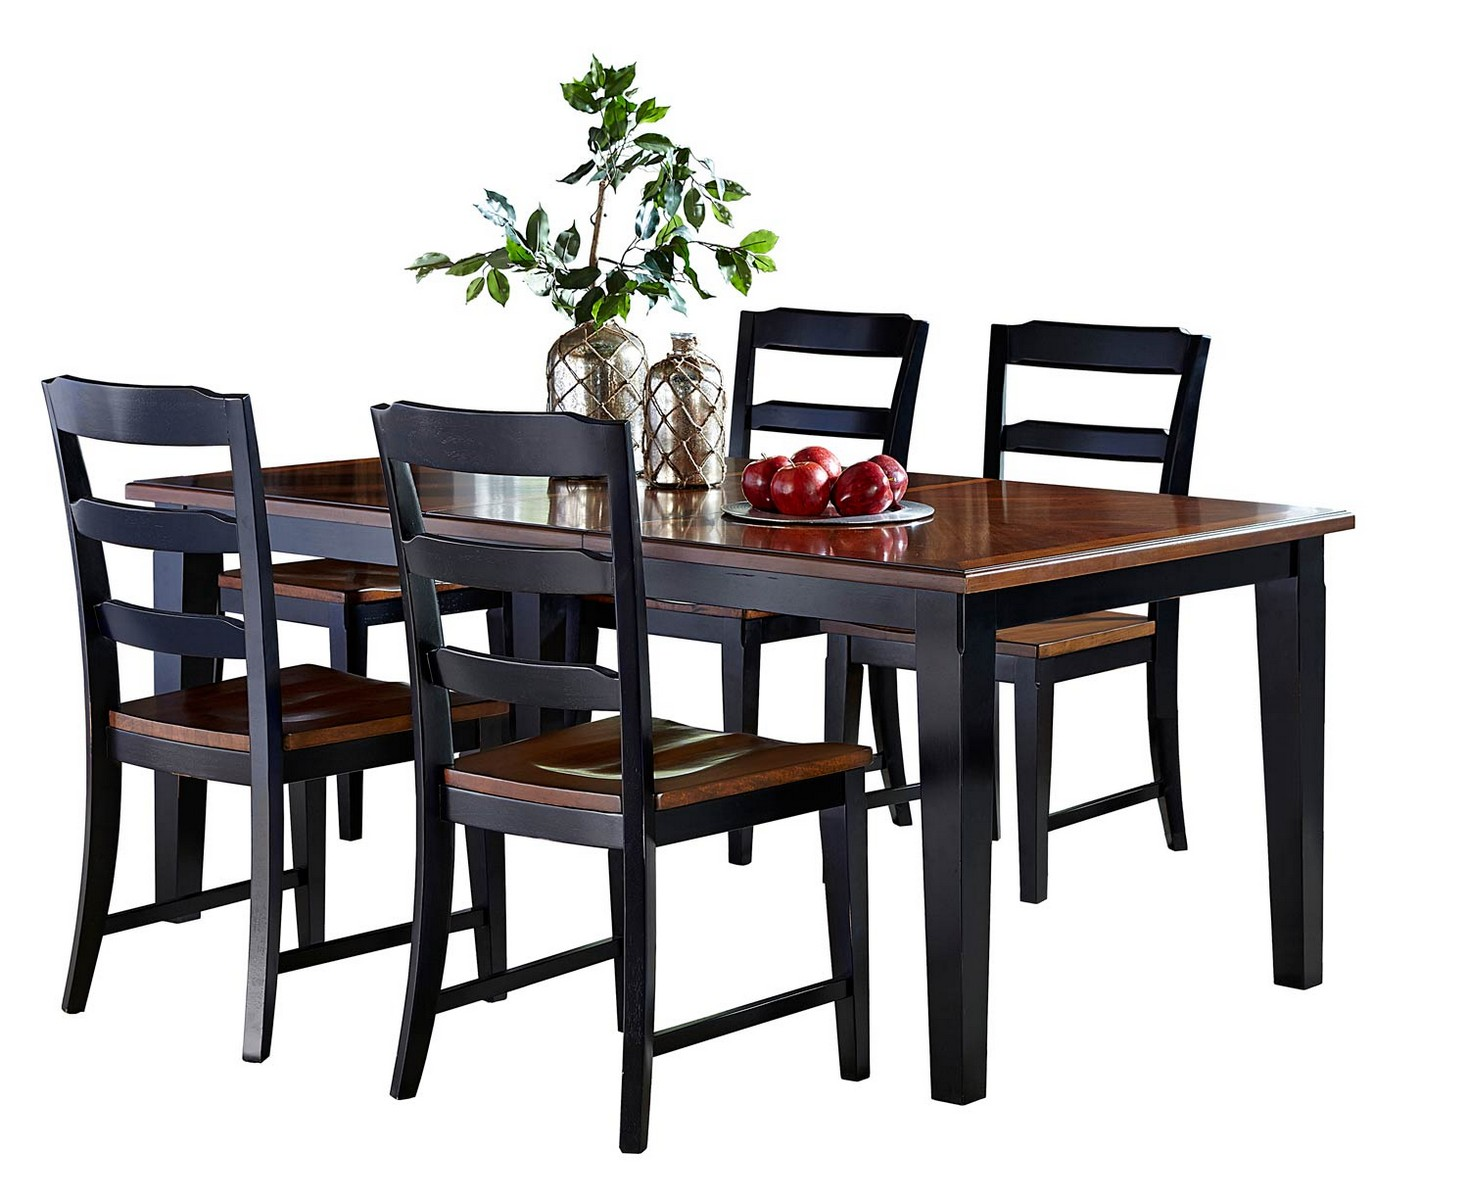 chair images hd cream covers dining room hillsdale avalon 5 pc set black cherry 5505dtbc